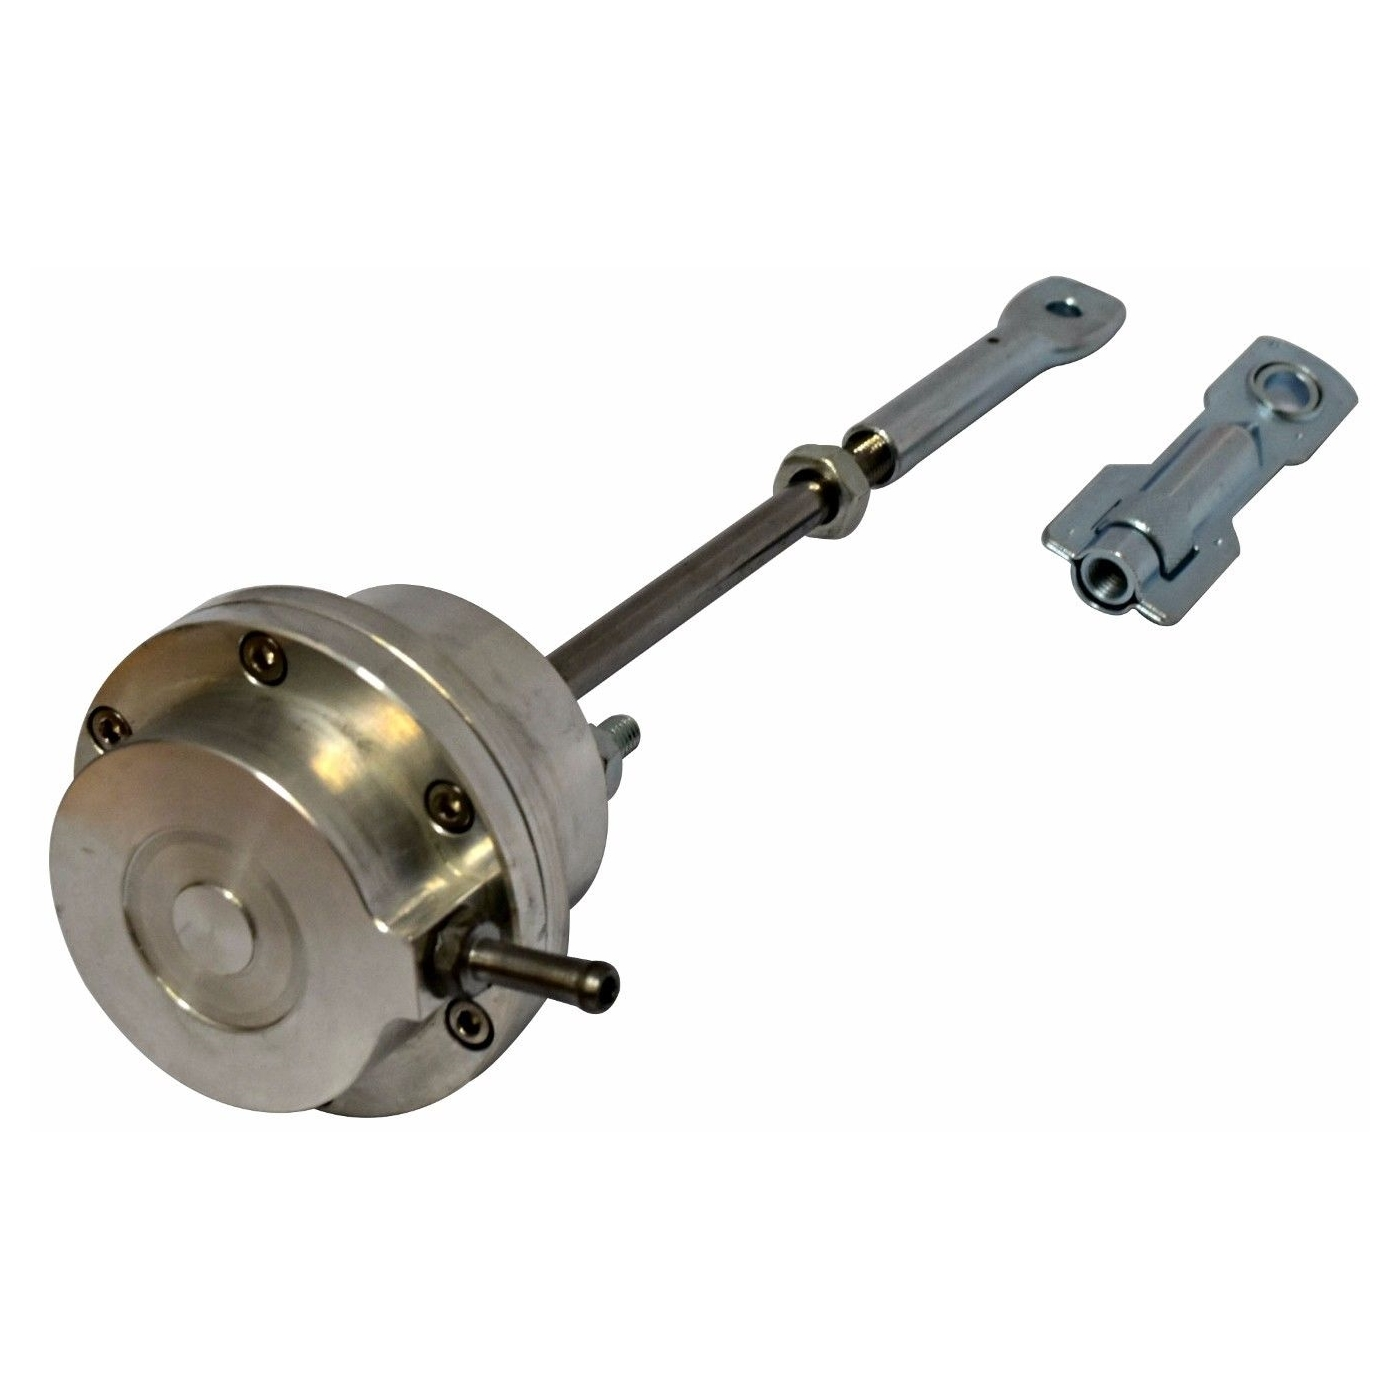 GTP38 Upgraded Wastegate Actuator For 99.5-03 7.3L Ford Powerstroke Diesel